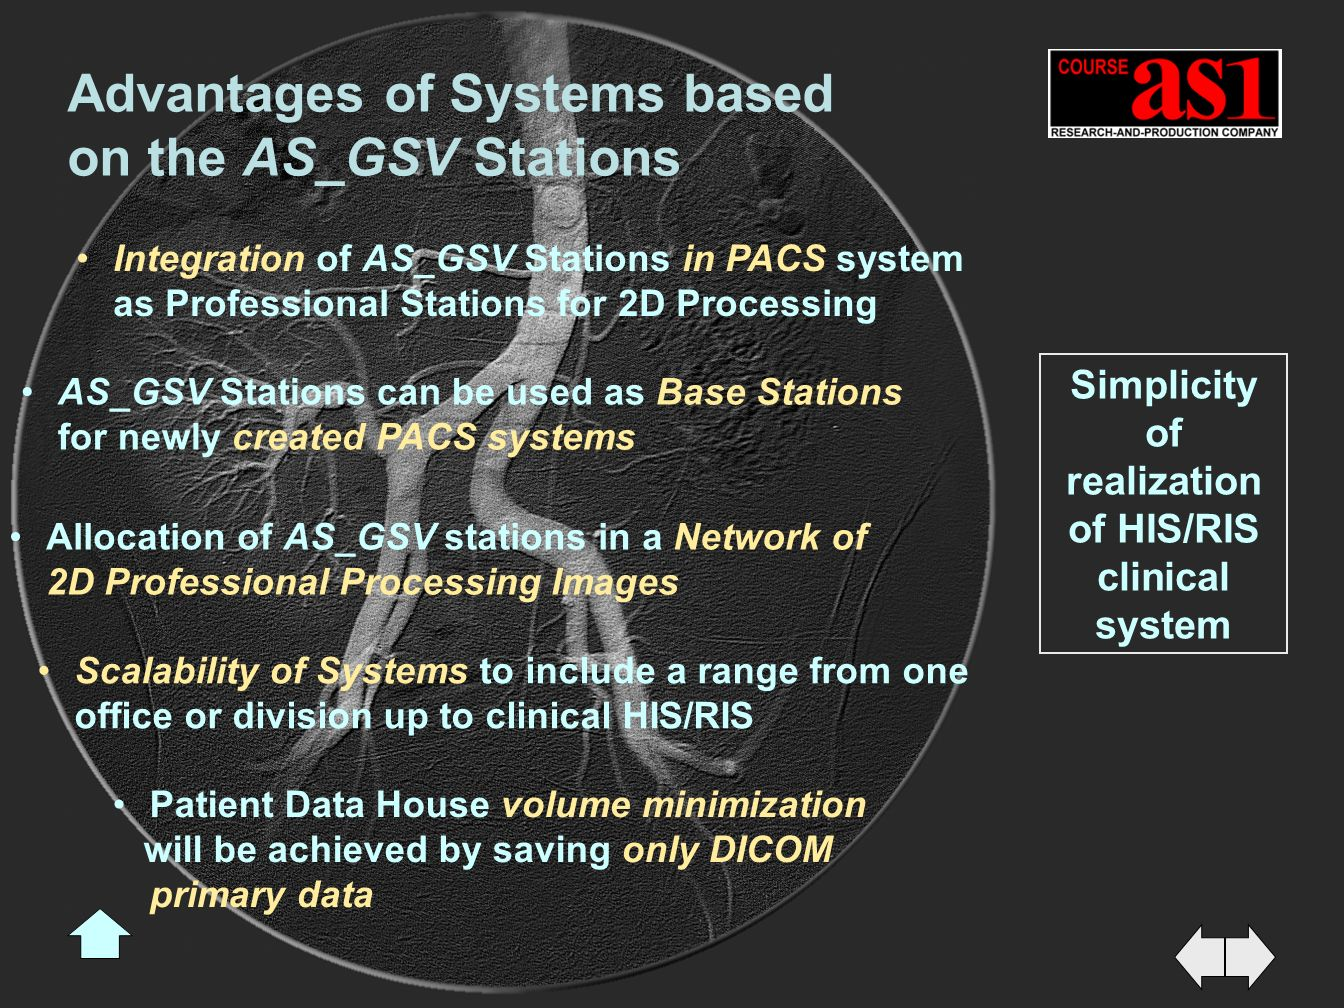 Simplicity of realization of HIS/RIS clinical system Advantages of Systems based on the AS_GSV Stations Integration of AS_GSV Stations in PACS system as Professional Stations for 2D Processing Allocation of AS_GSV stations in a Network of 2D Professional Processing Images Scalability of Systems to include a range from one office or division up to clinical HIS/RIS Patient Data House volume minimization will be achieved by saving only DICOM primary data AS_GSV Stations can be used as Base Stations for newly created PACS systems